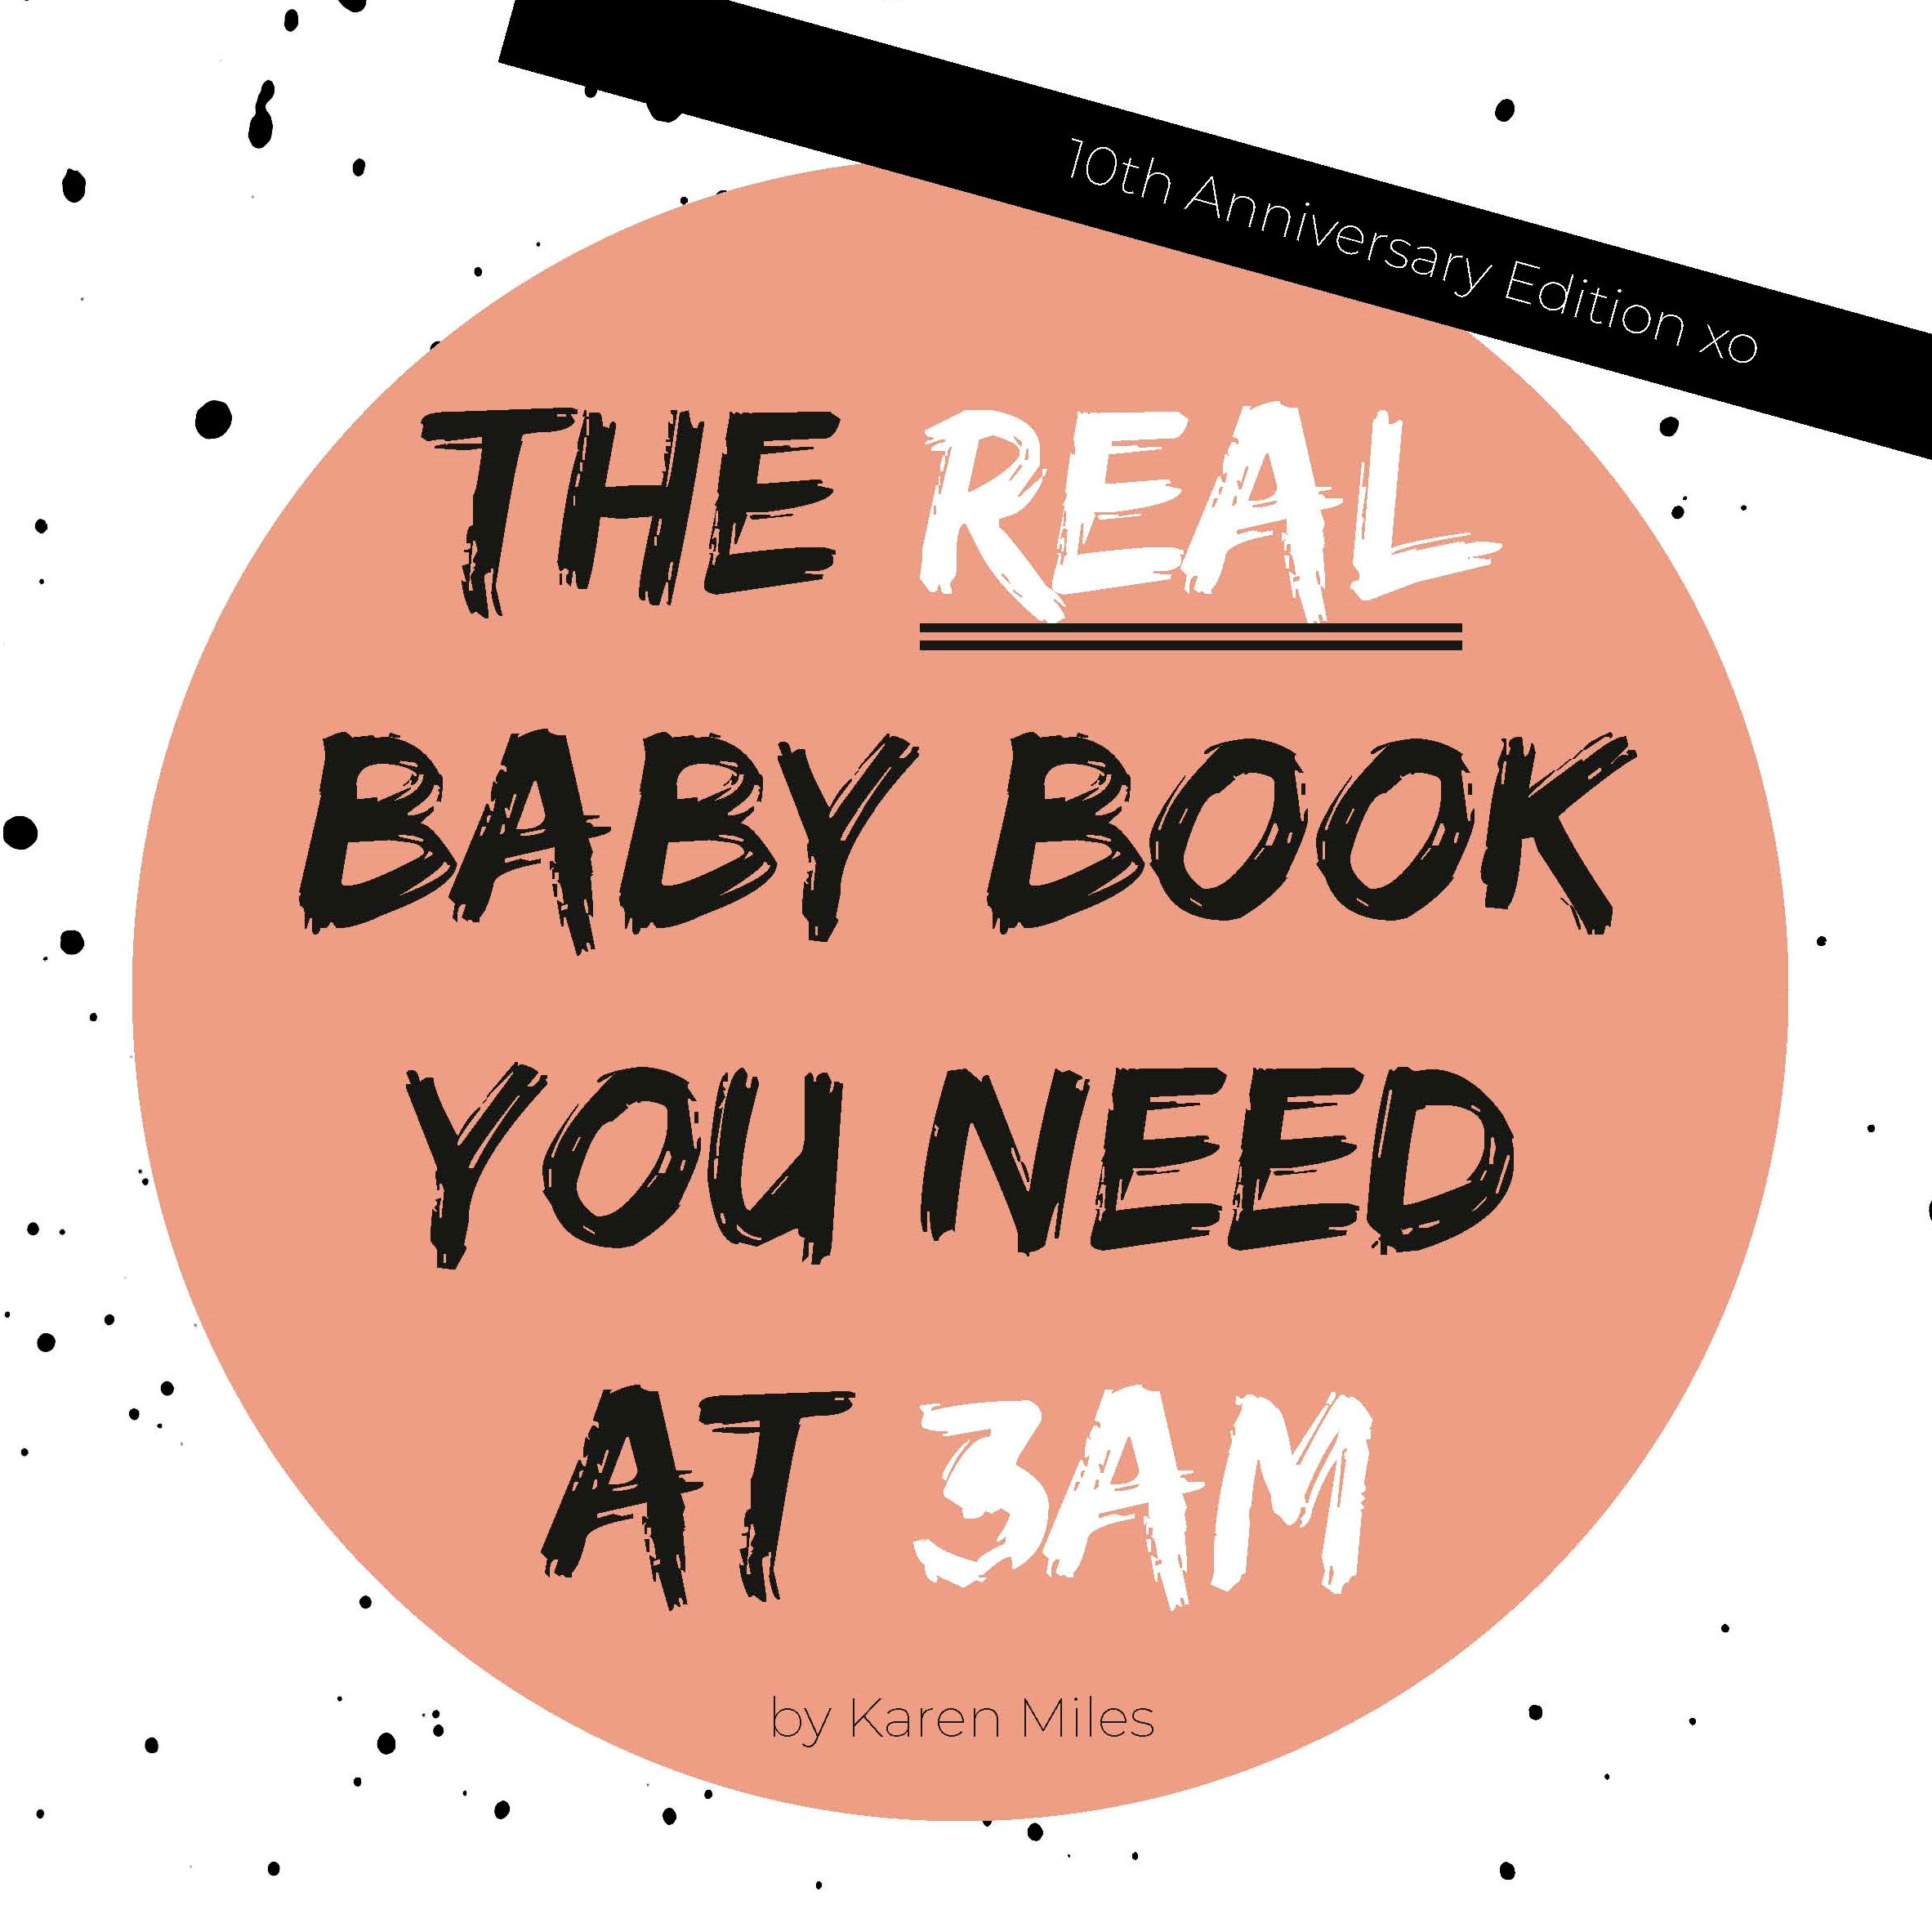 The Real Baby Book you need at 3am